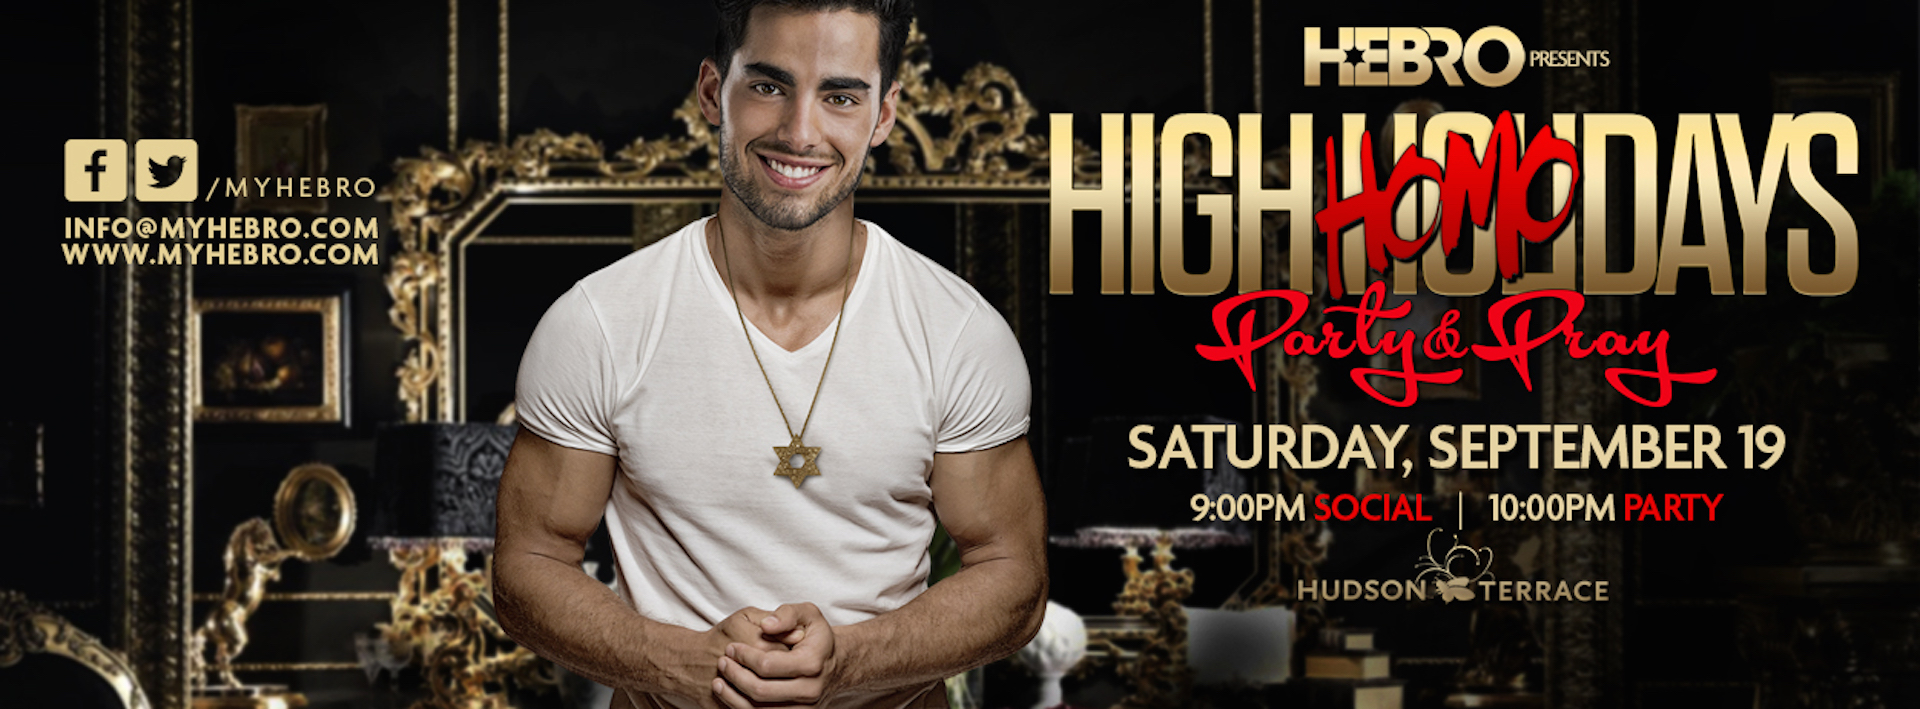 Tickets for HIGH HOMODAYS 2015 in New York from ShowClix